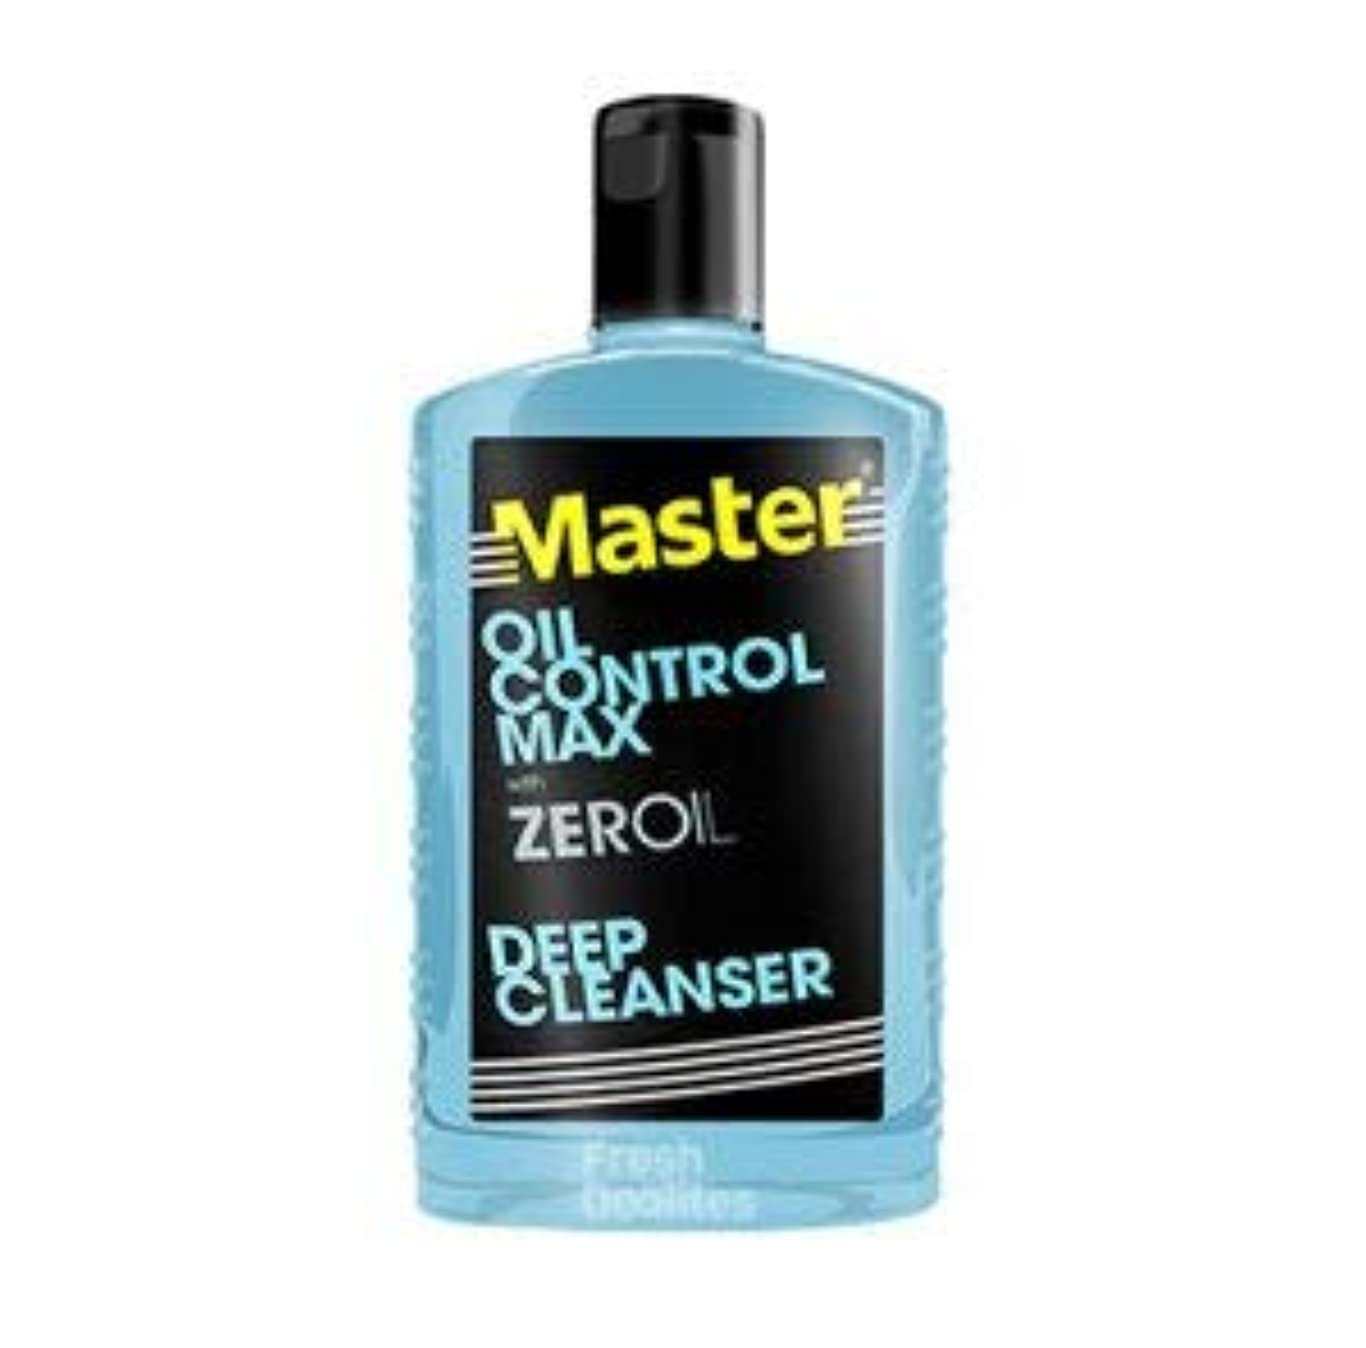 Master OIL CONTROL MAX with ZEROIL 135ml【PHILIPPINES】